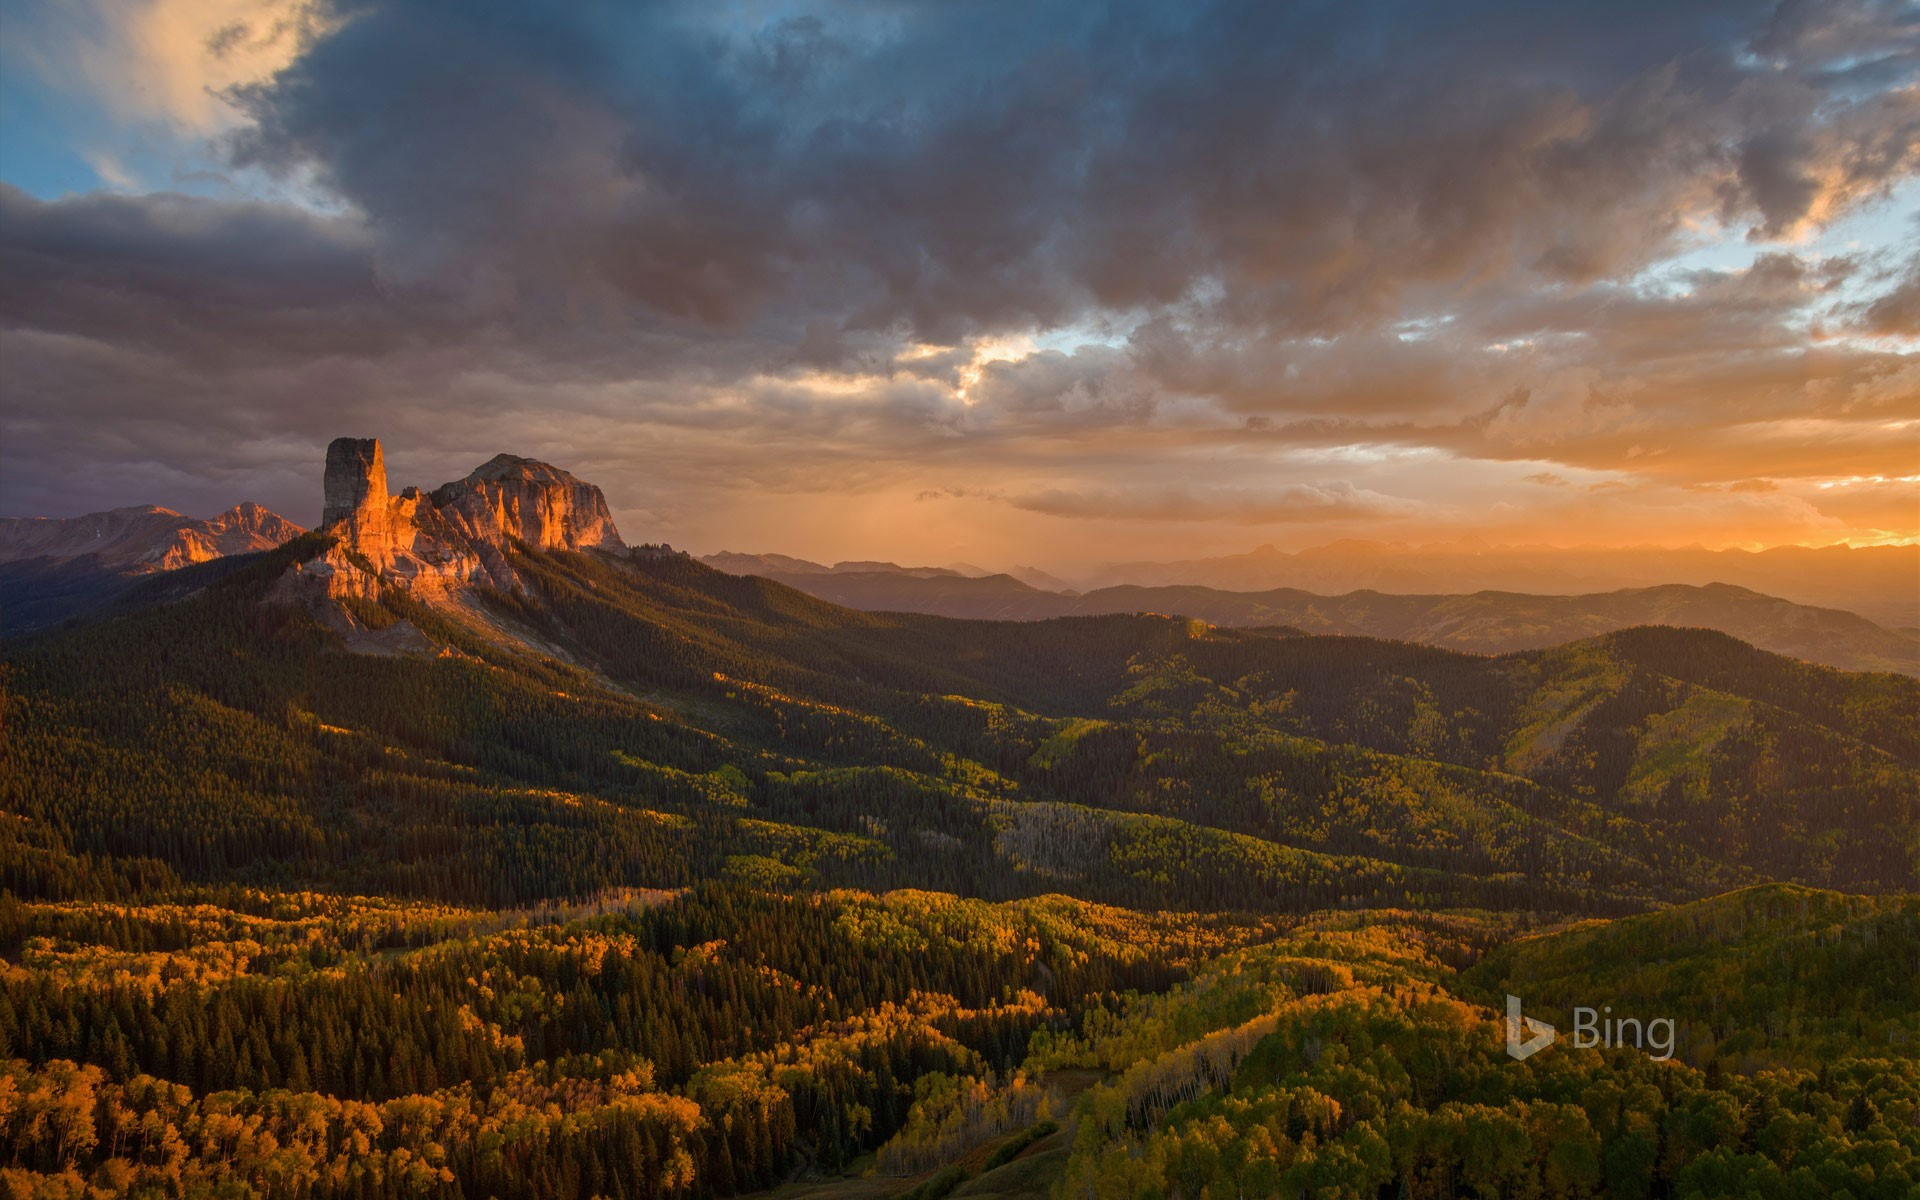 Chimney Rock and Uncompahgre National Forest, Colorado